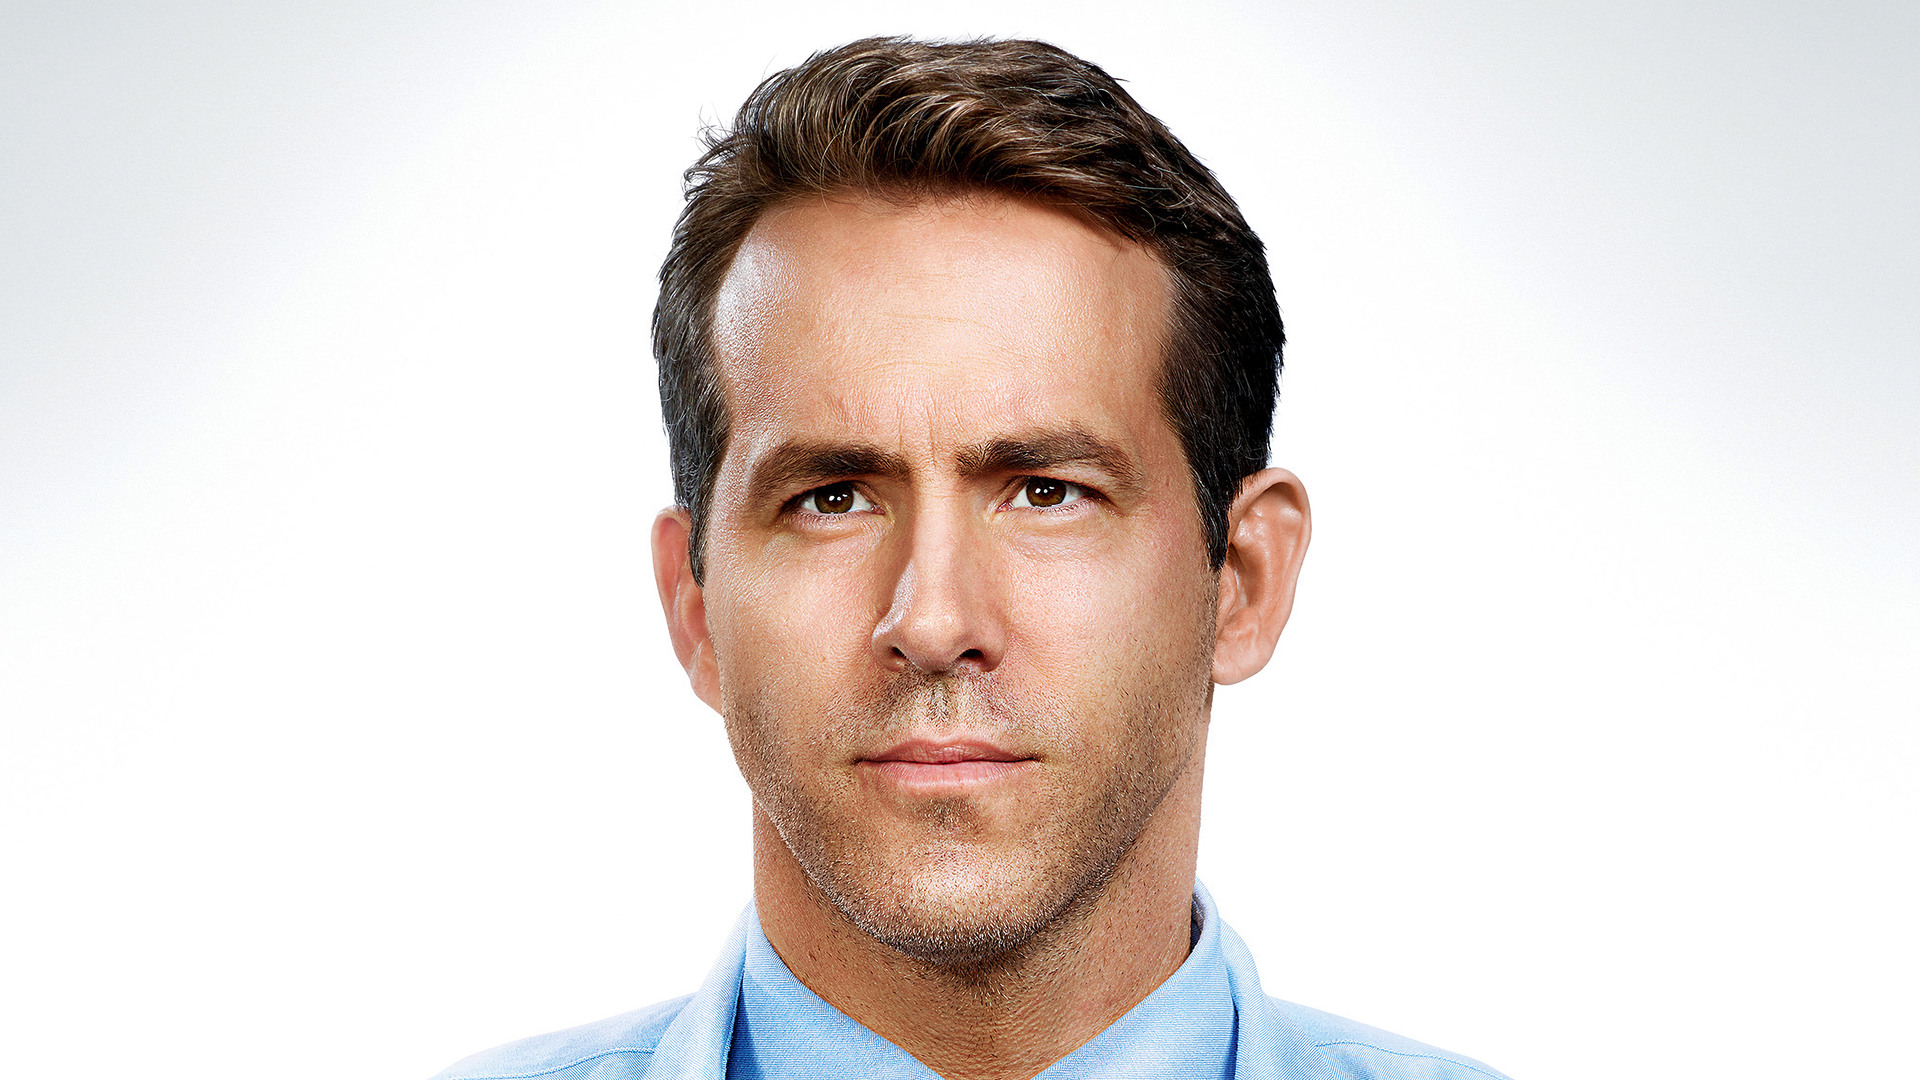 Guy Ryan Reynolds Movie Poster 4K Wallpaper 7622 1920x1080